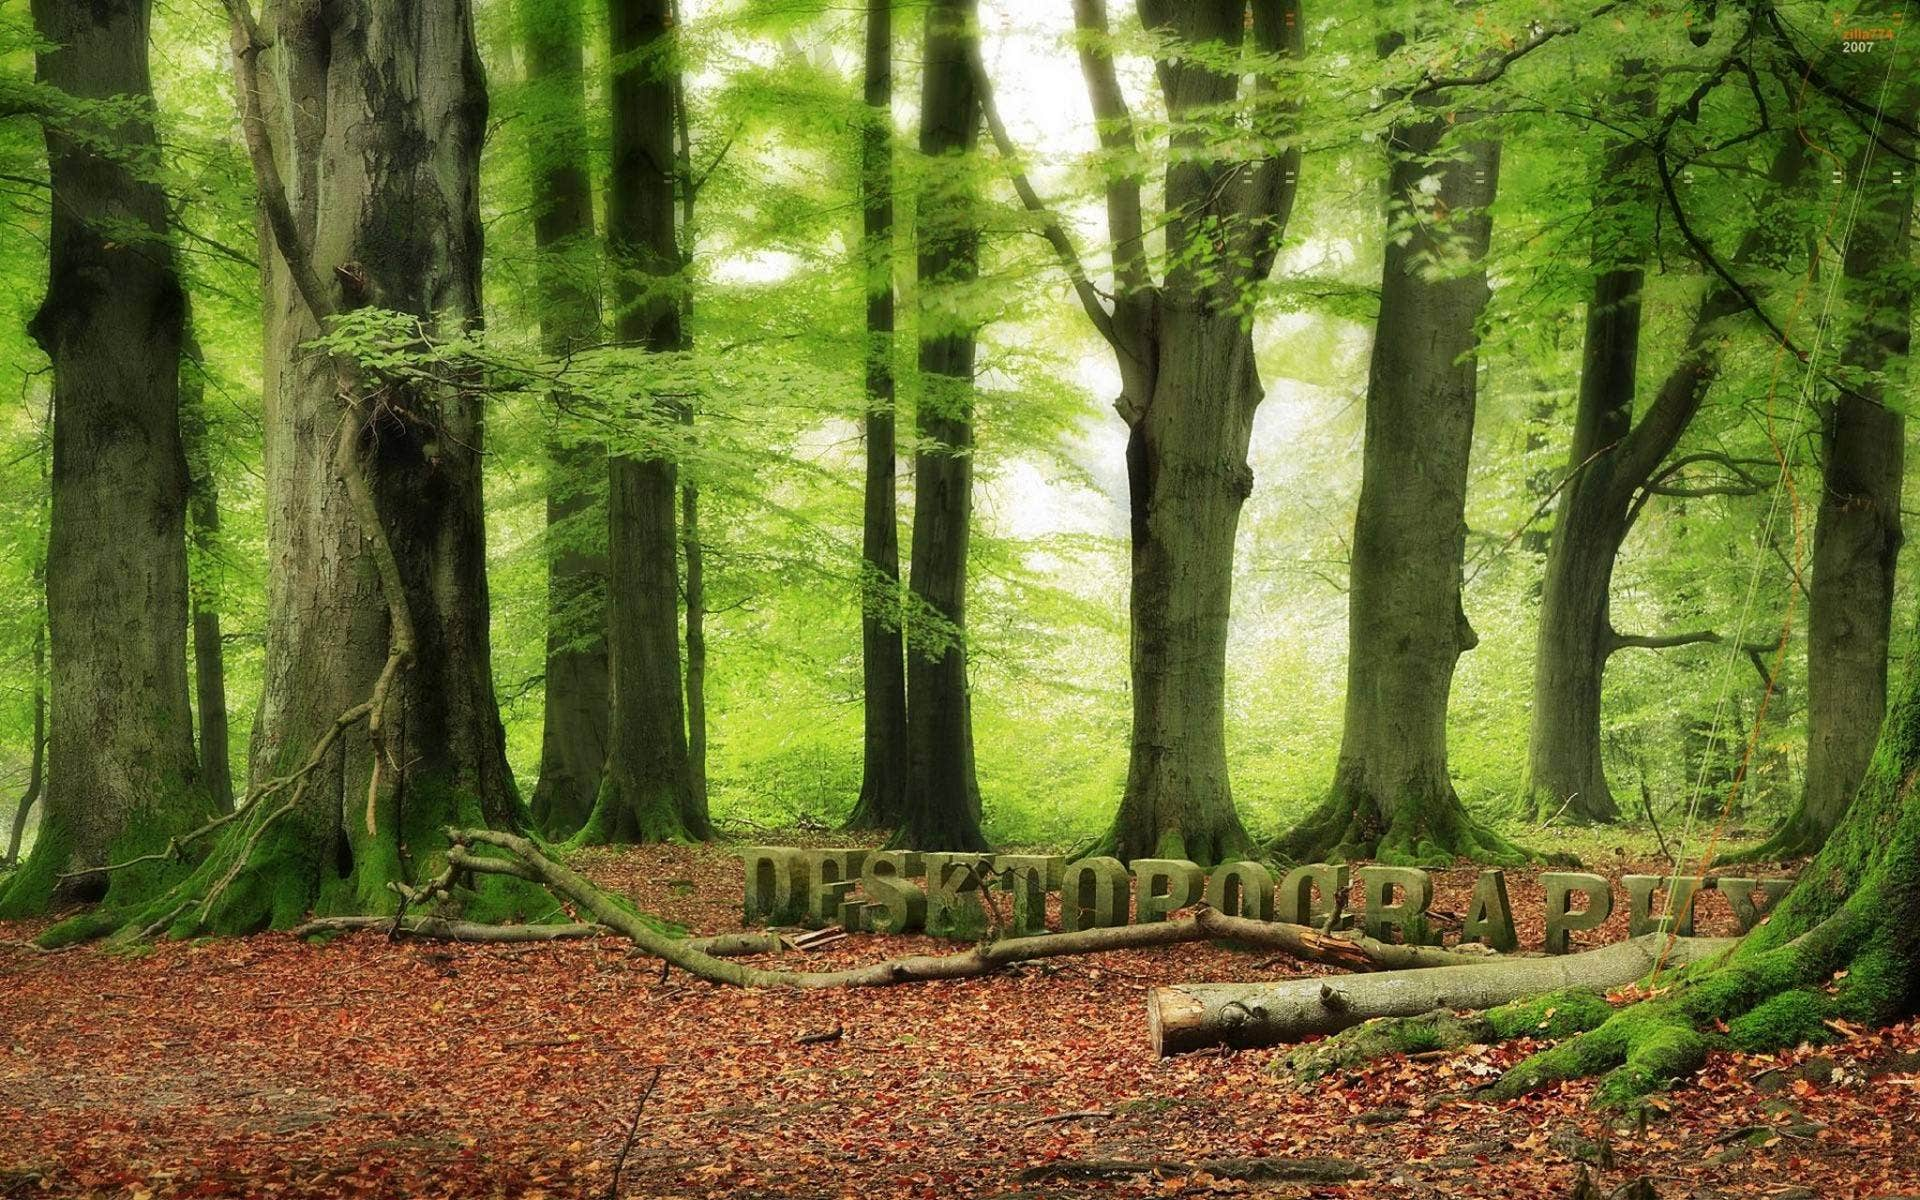 forest desktopography hd wallpaper 1920x1200